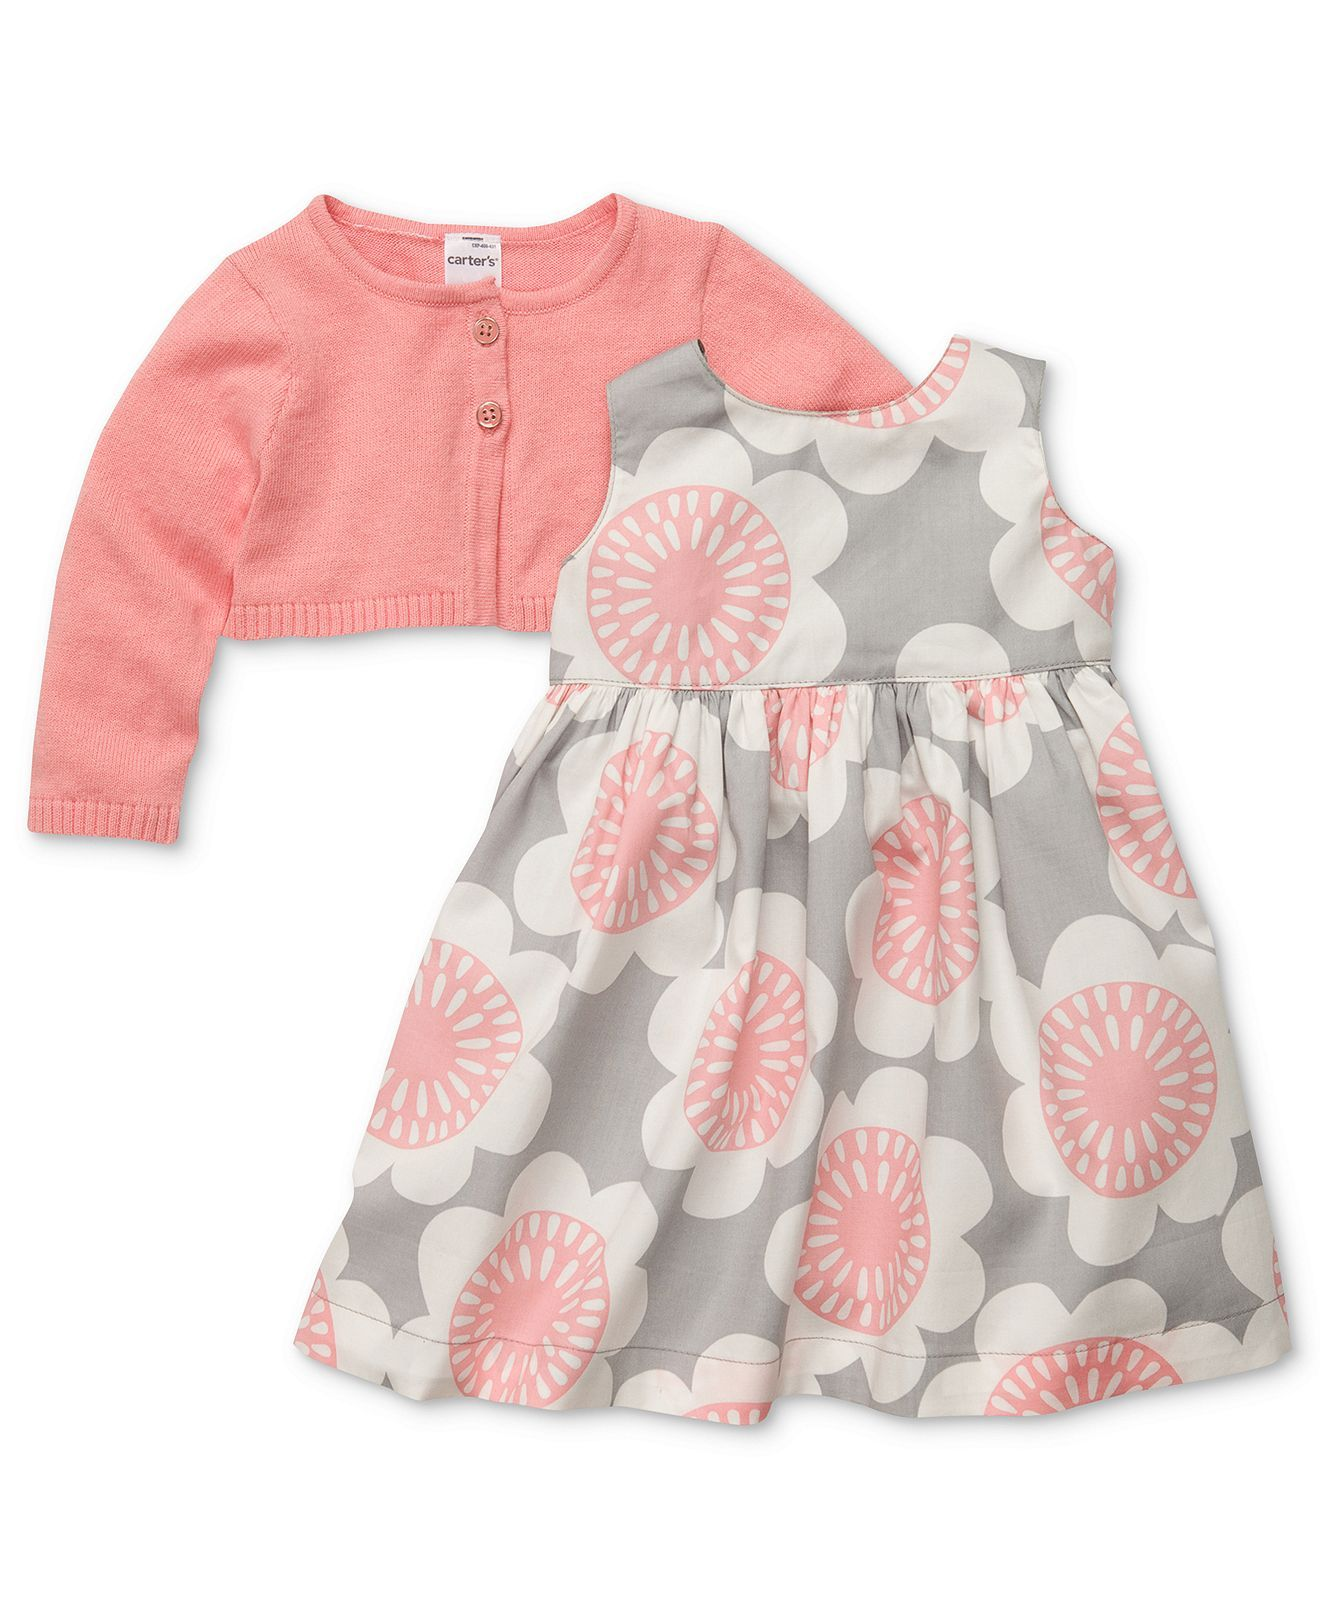 Carter s Baby Set Baby Girls 2 Piece Printed Dress and Cardigan Set